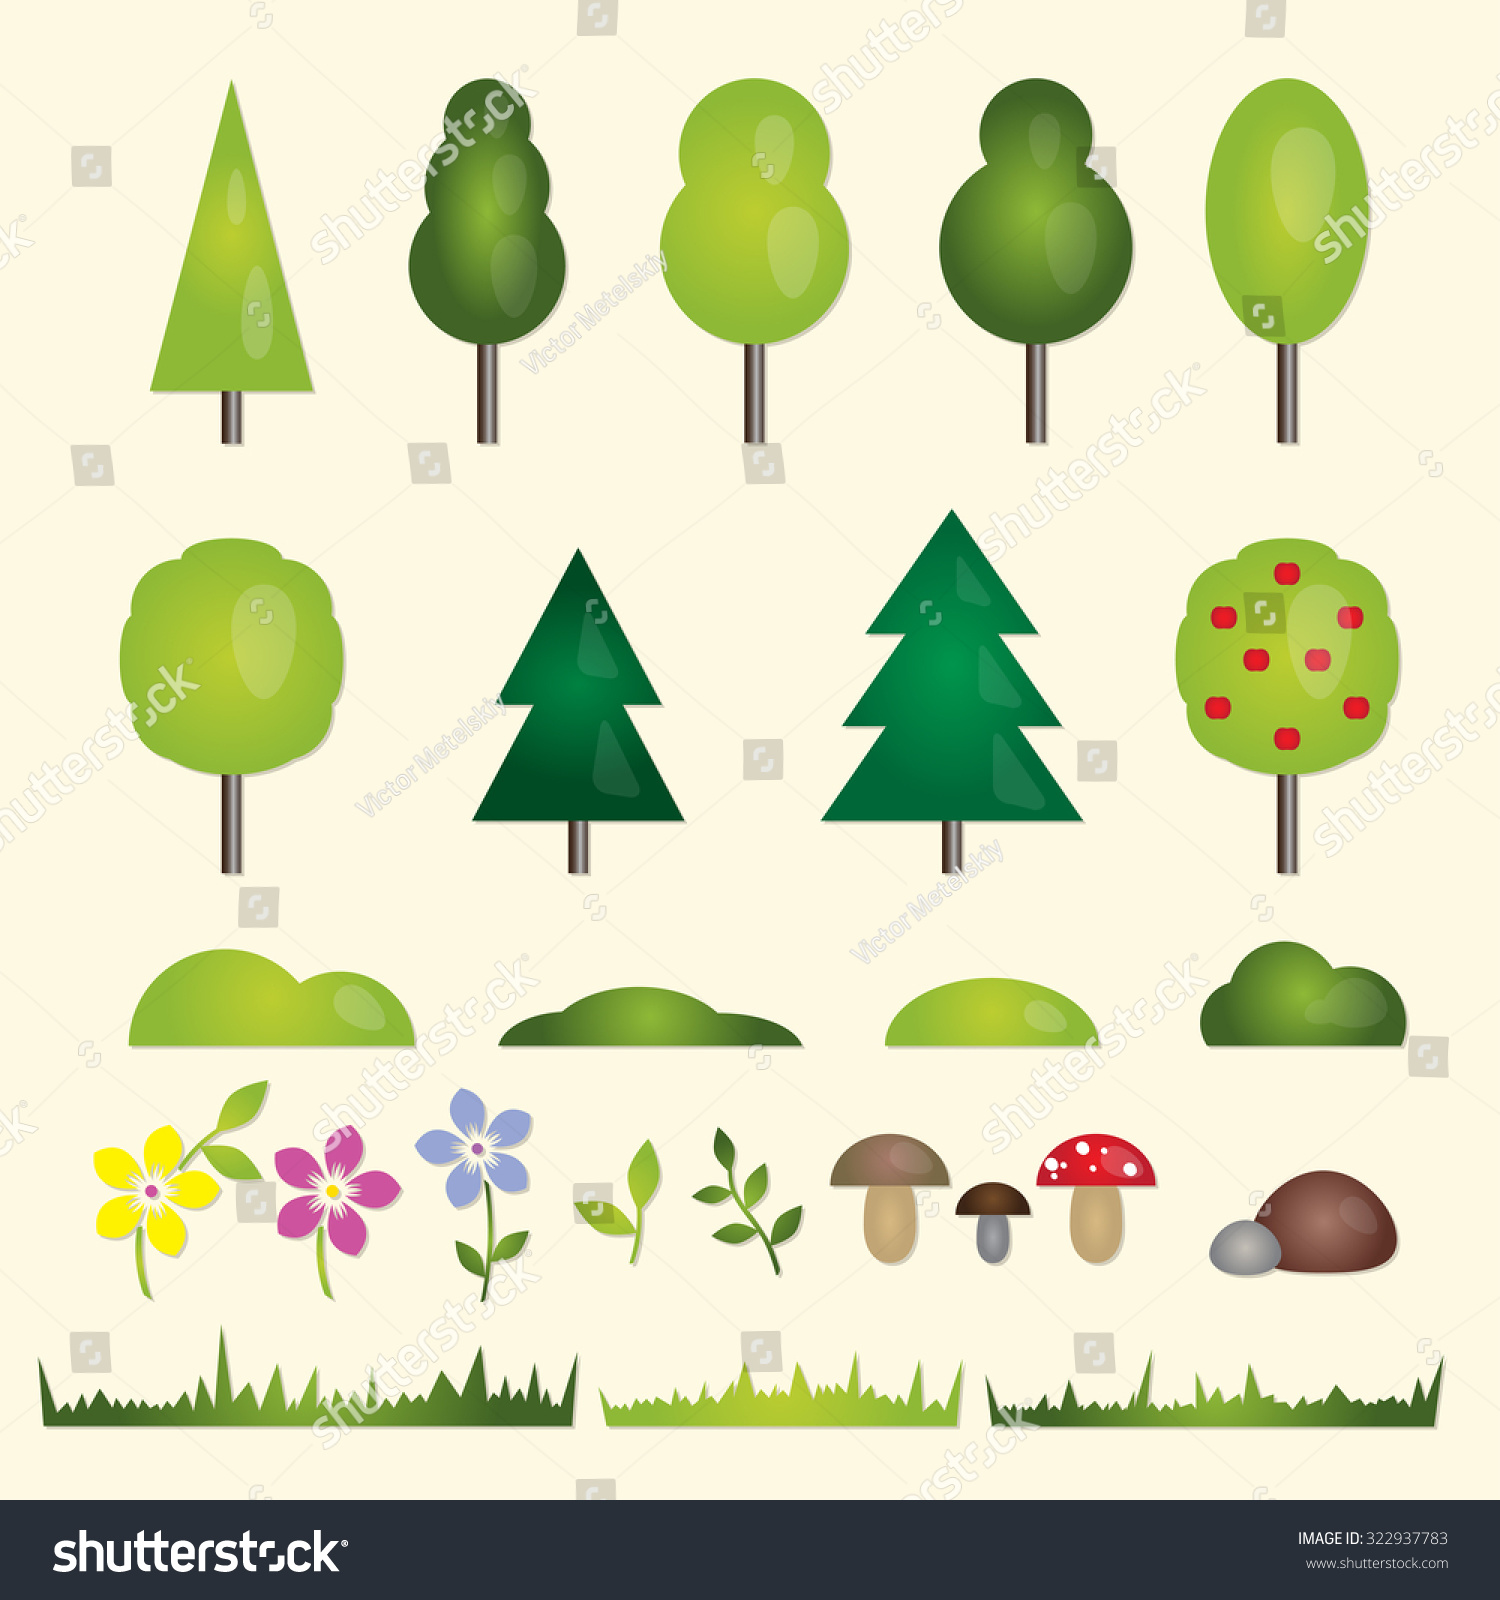 Forest garden flat symbols landscape trees stock illustration forest and garden flat symbols of the landscape trees fir trees spruce buycottarizona Image collections